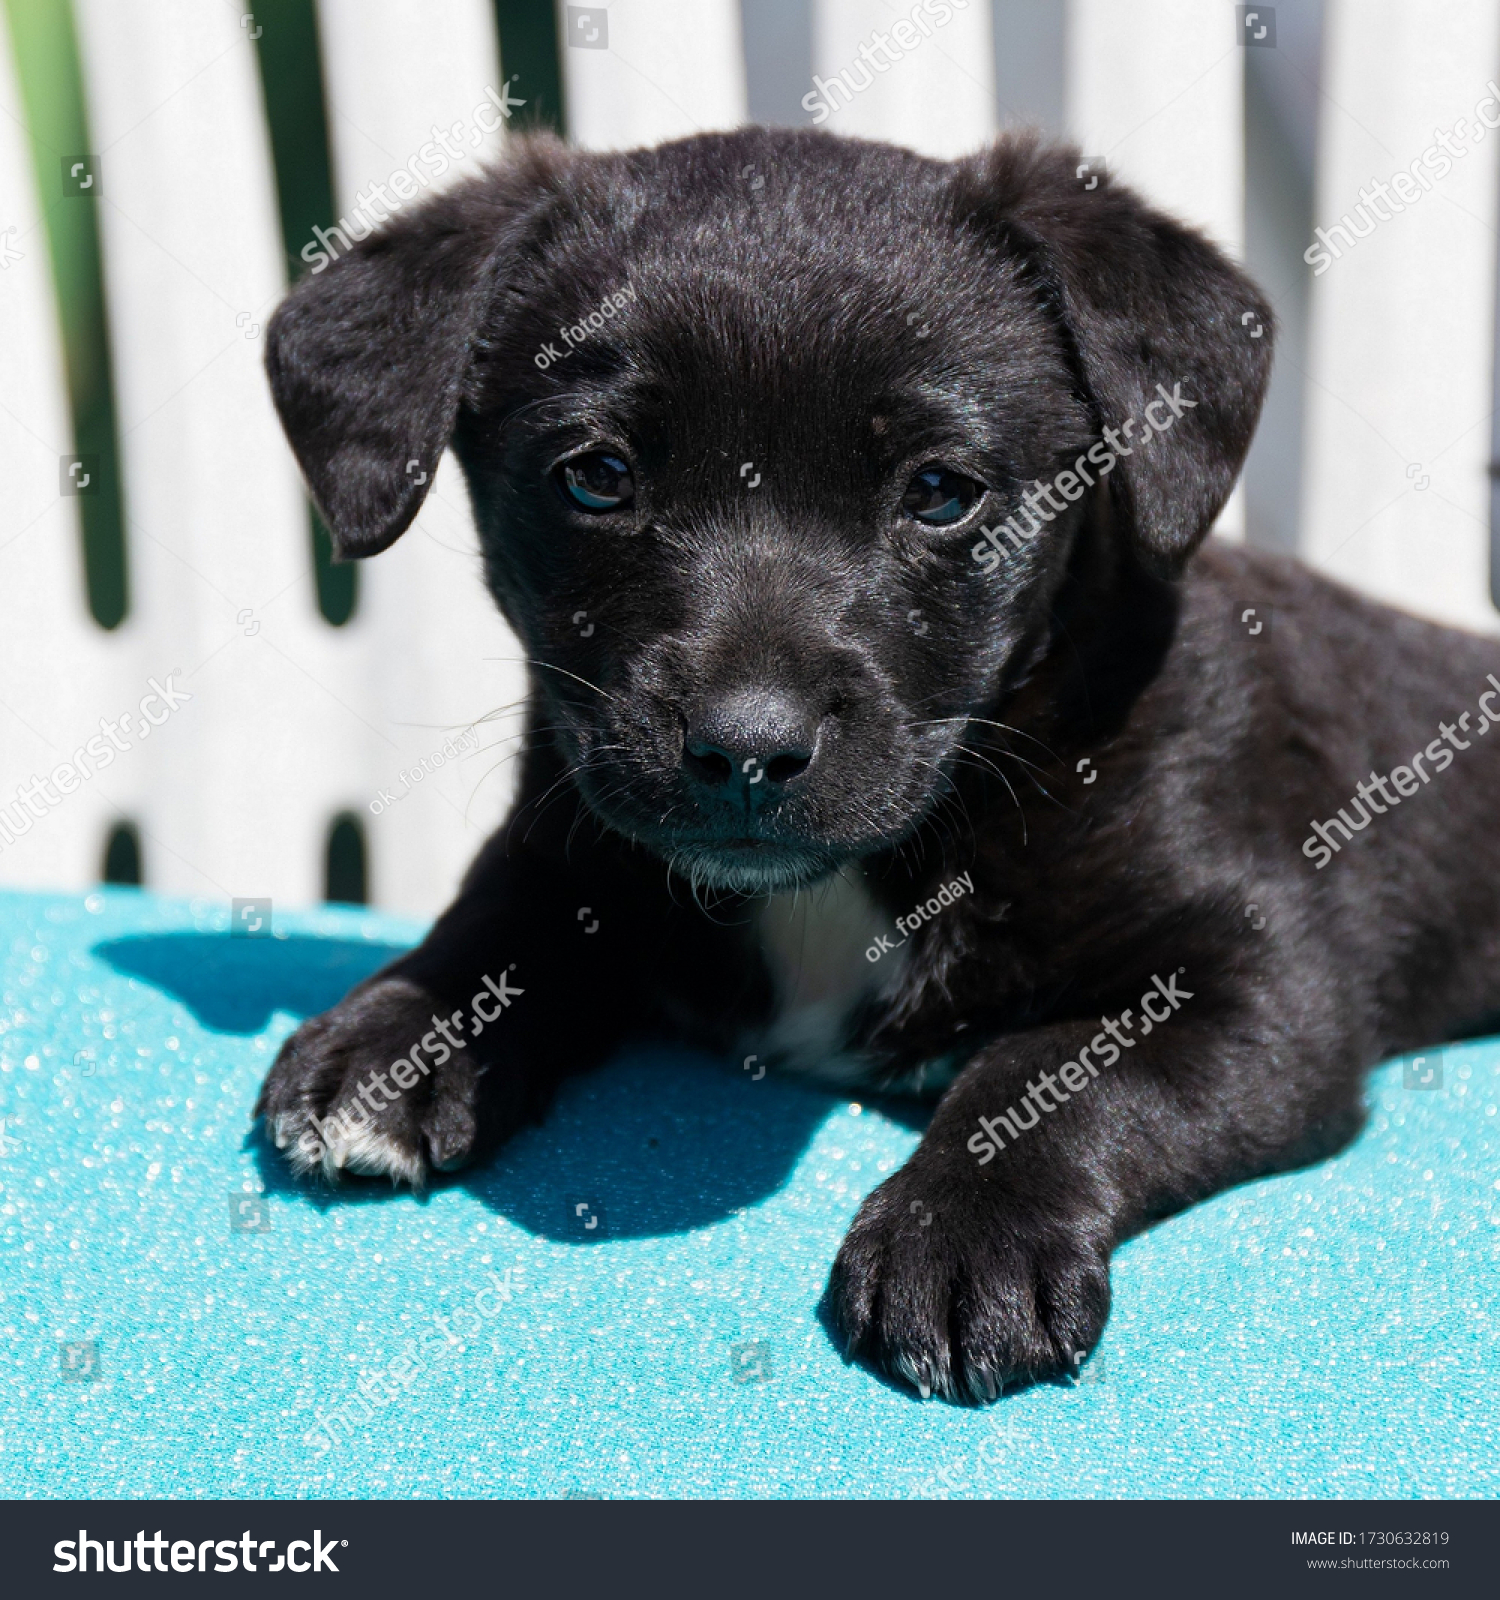 Little black puppy lies on a blue pillow on a sunny day